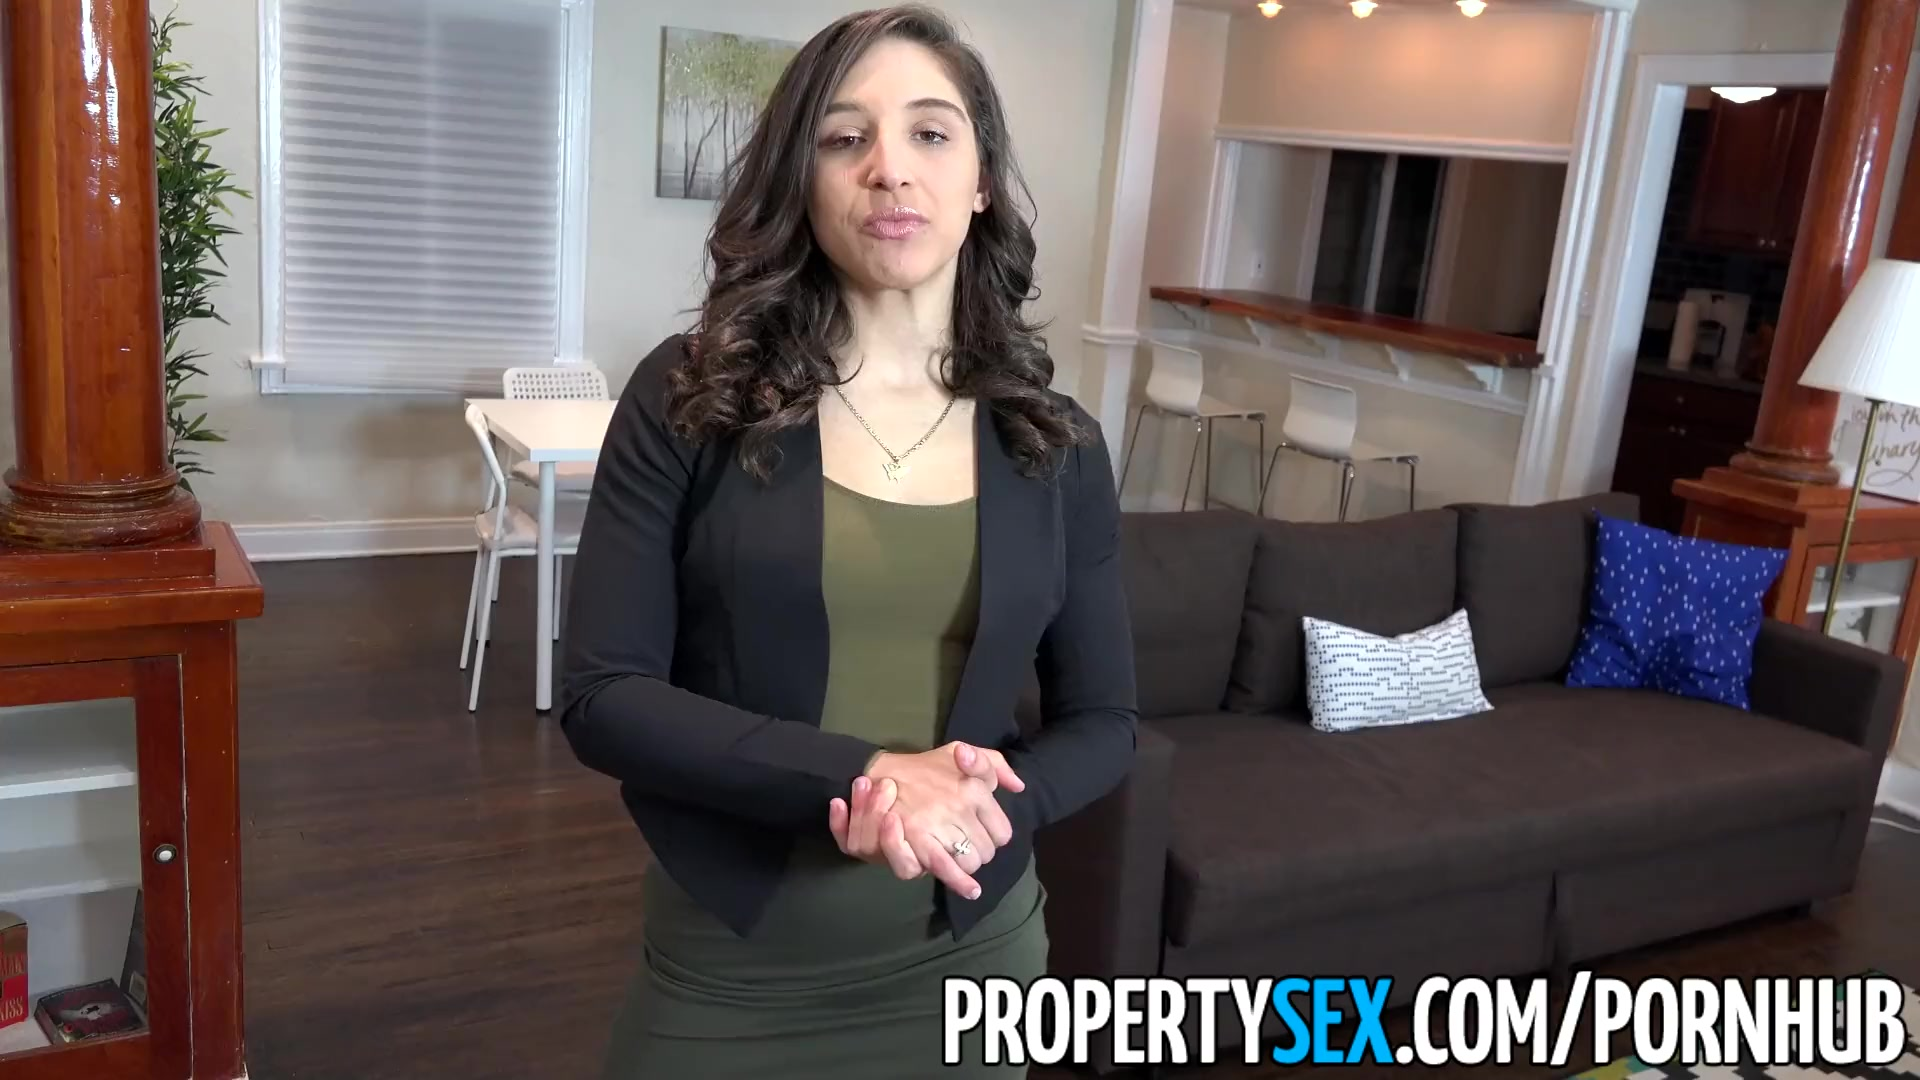 Propertysex college student fucks hot real estate agent 7